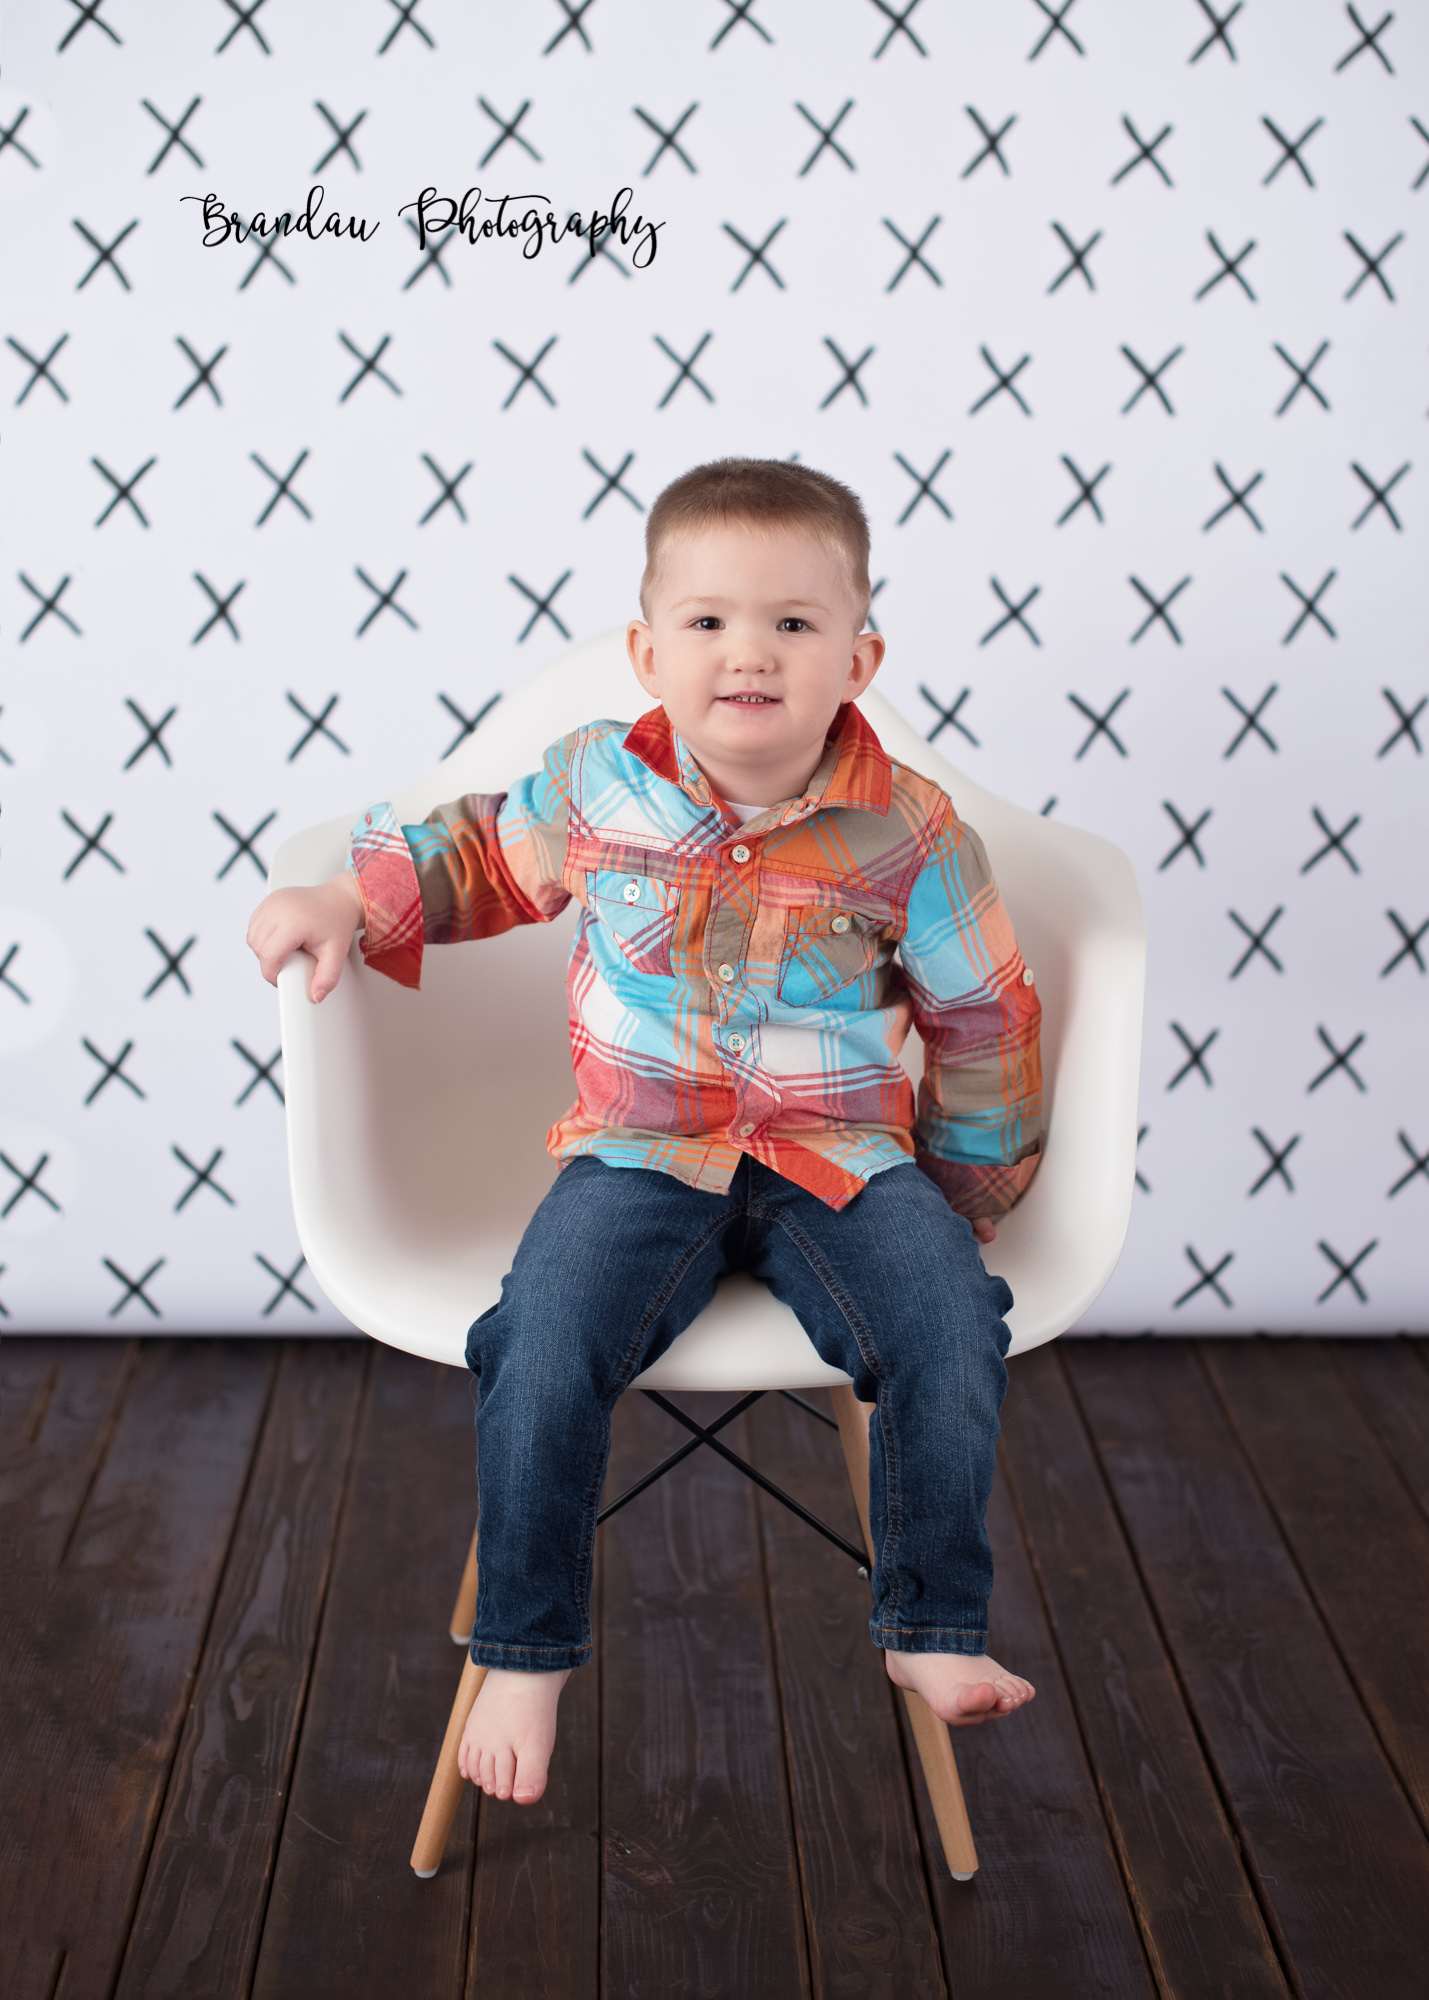 Brandau Photography_ boy girl chair.jpg